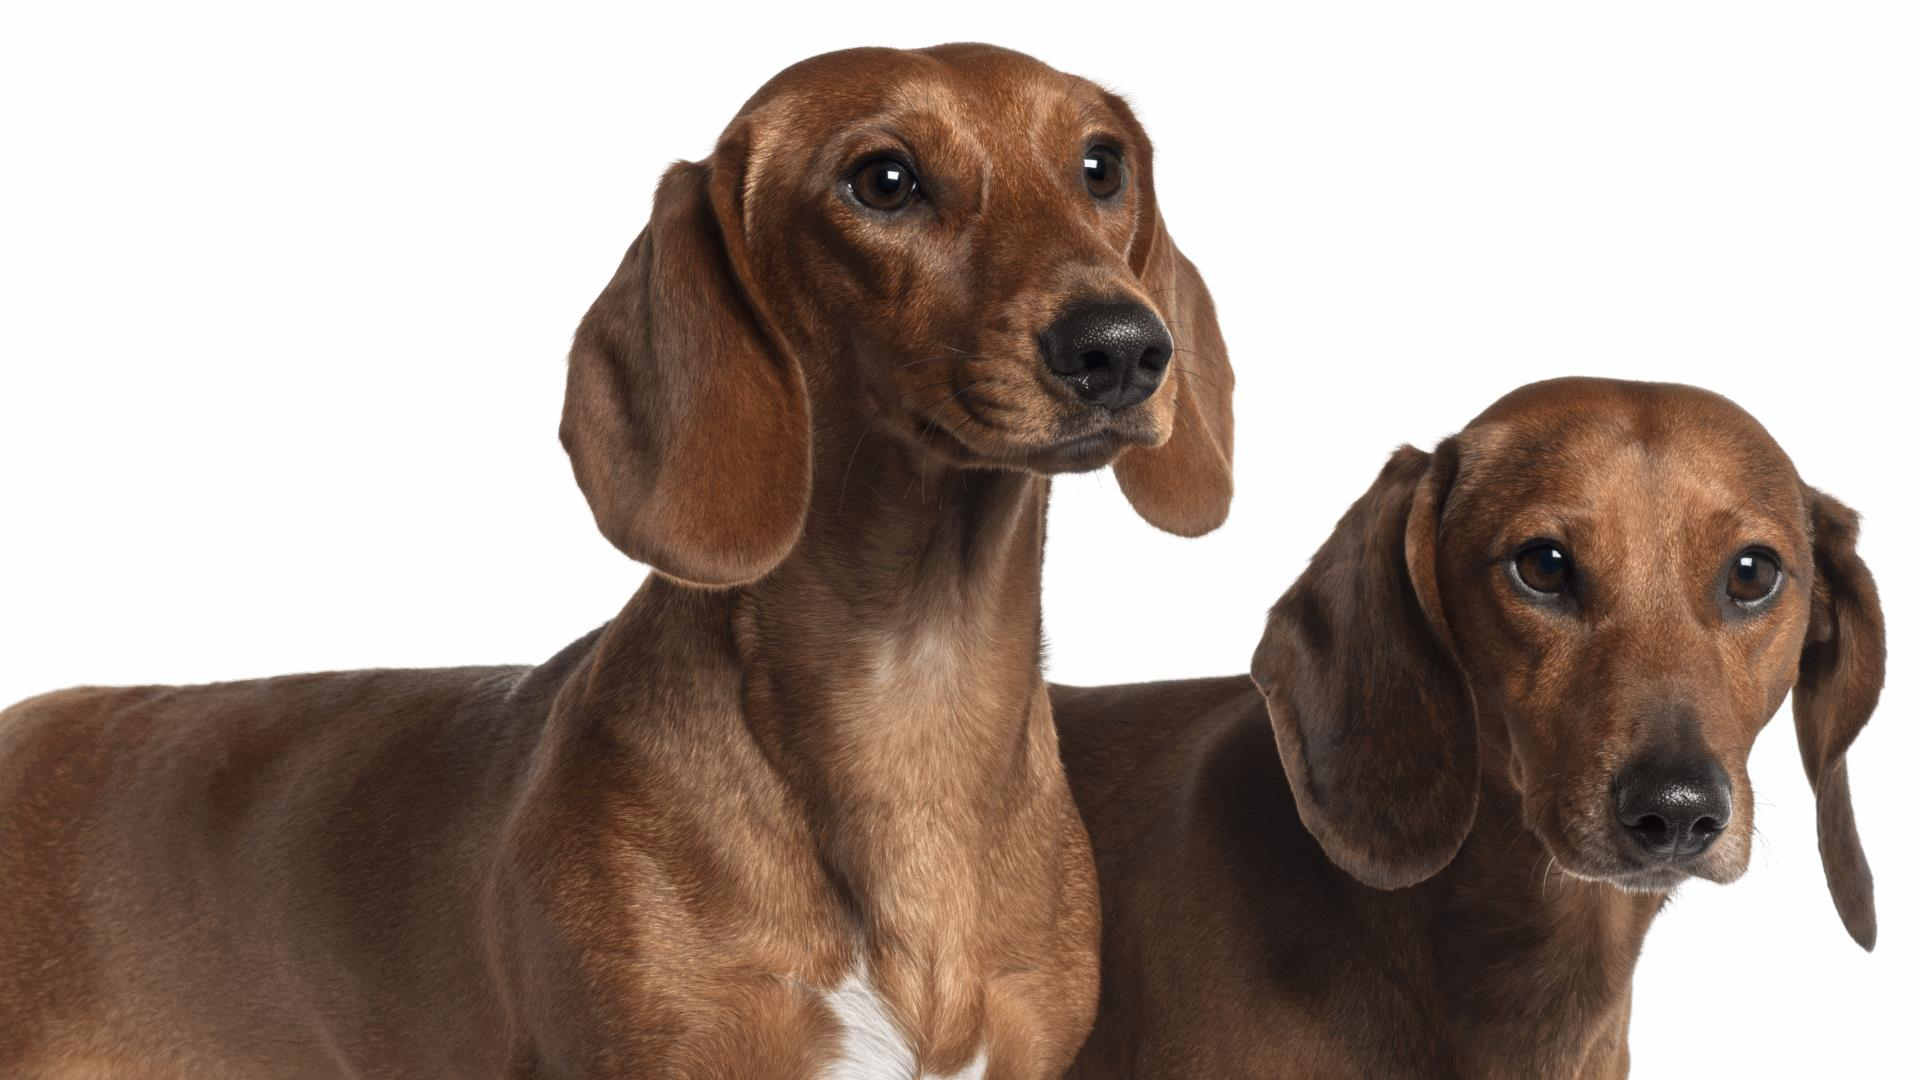 Dog Walks 6 Miles To Be With His Dachshund Love